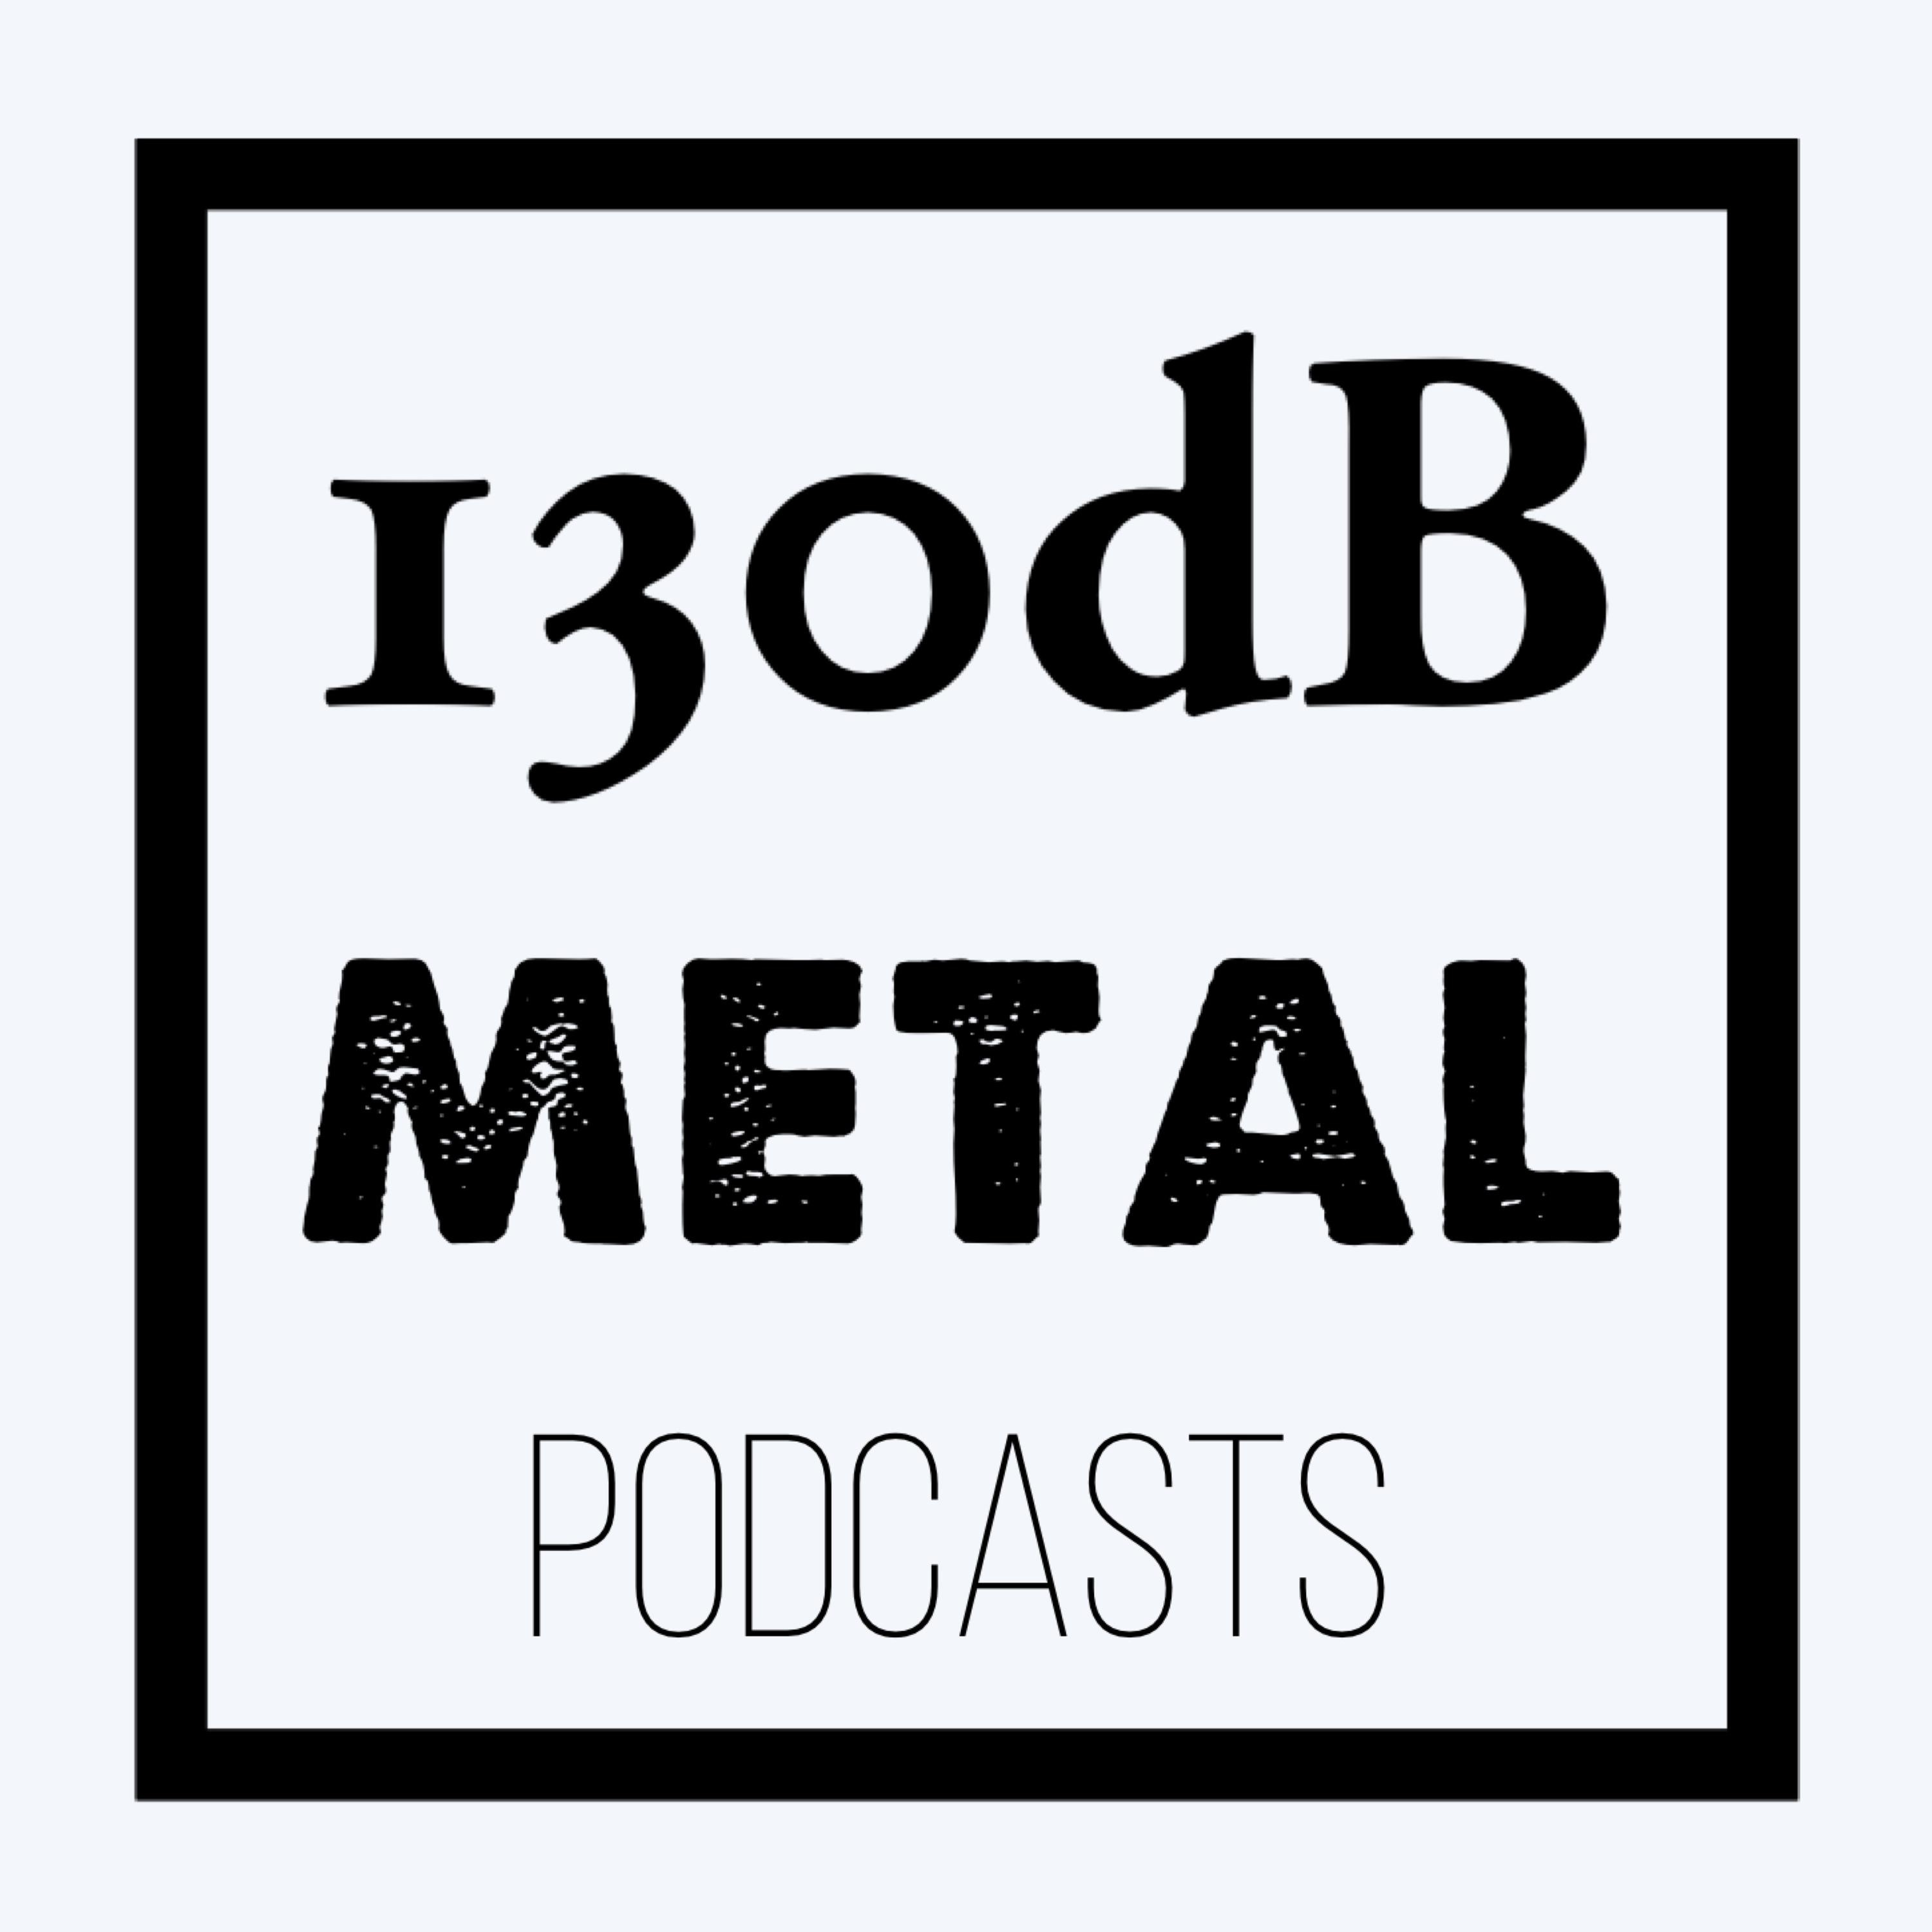 130dB Metal Up Your Ears